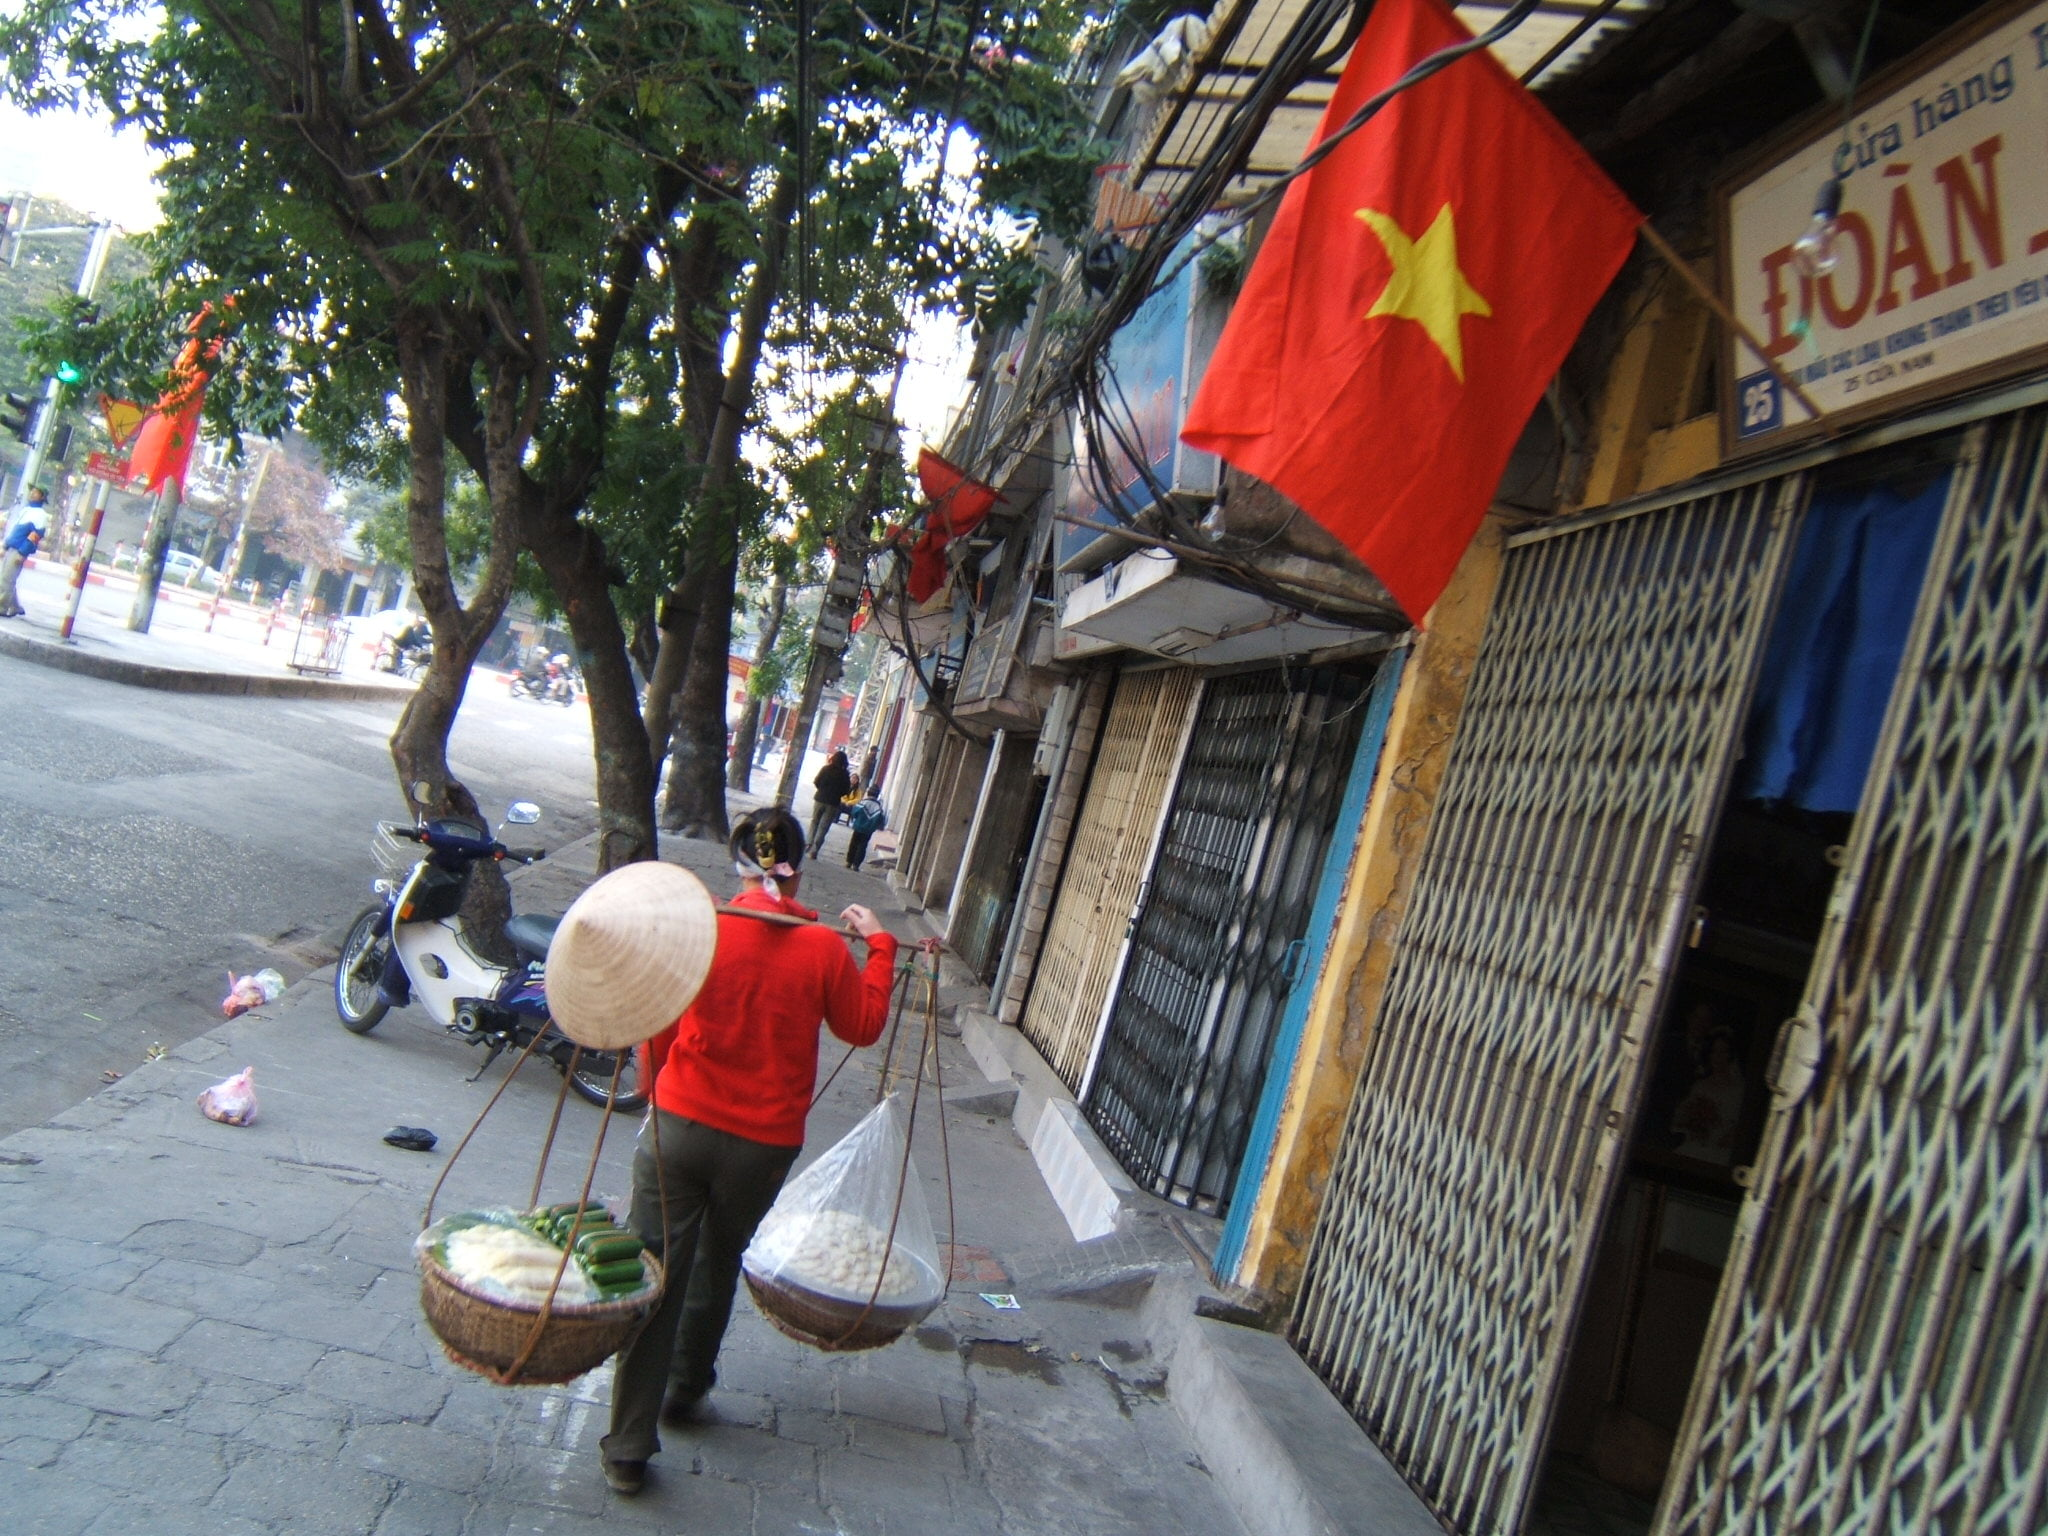 Will Bitcoin Soon Be Legal in Vietnam?